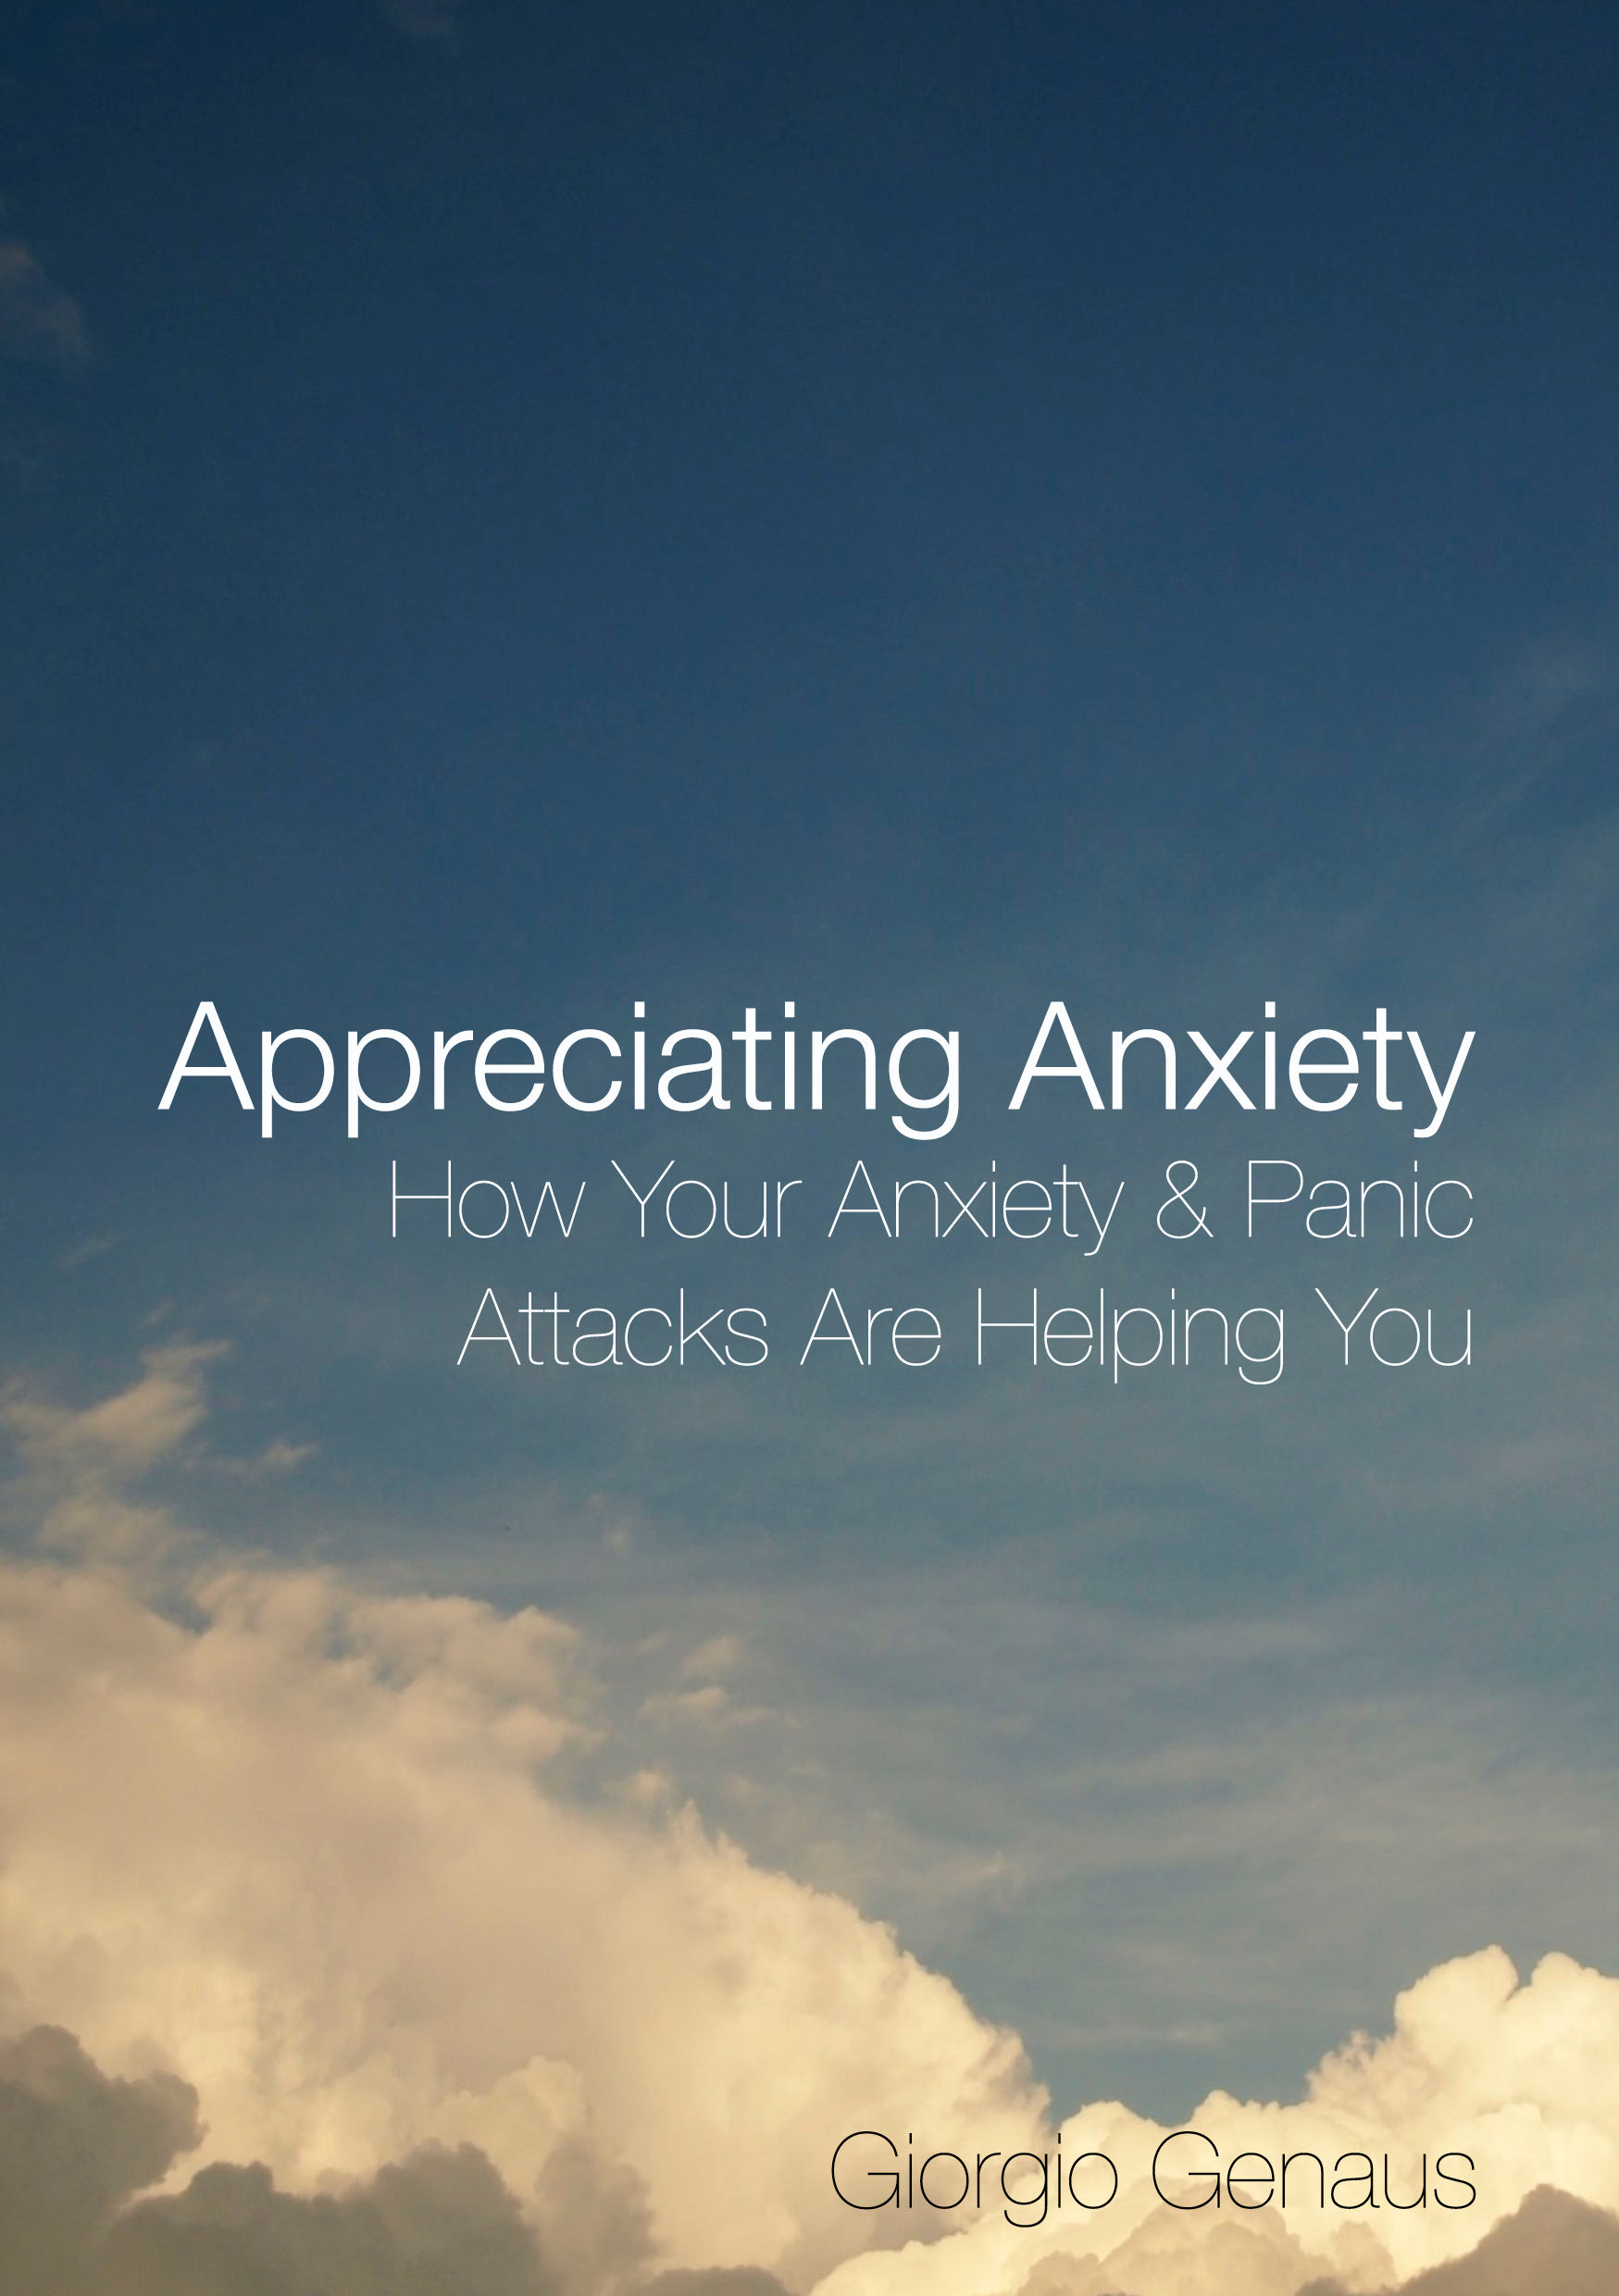 Appreciating Anxiety eBook cover